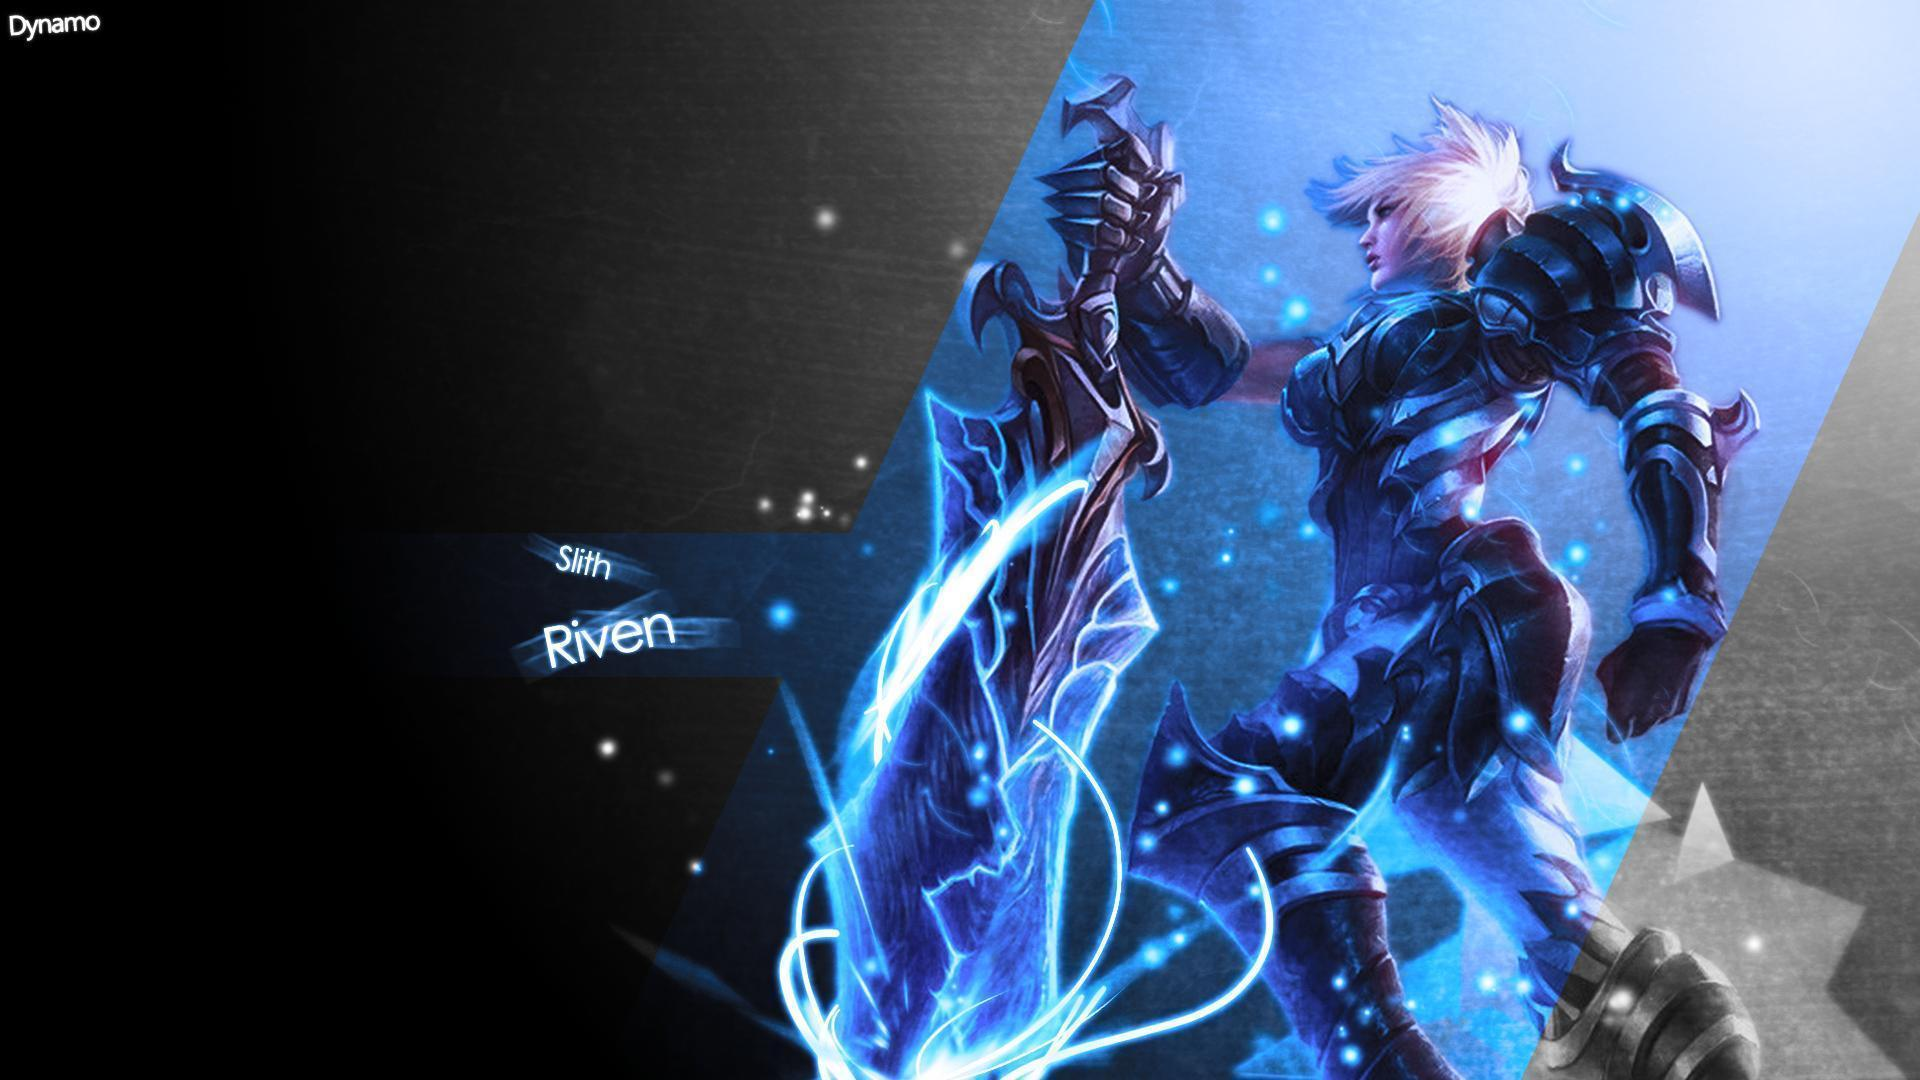 Riven Wallpaper 1920x1080 High Definition Background